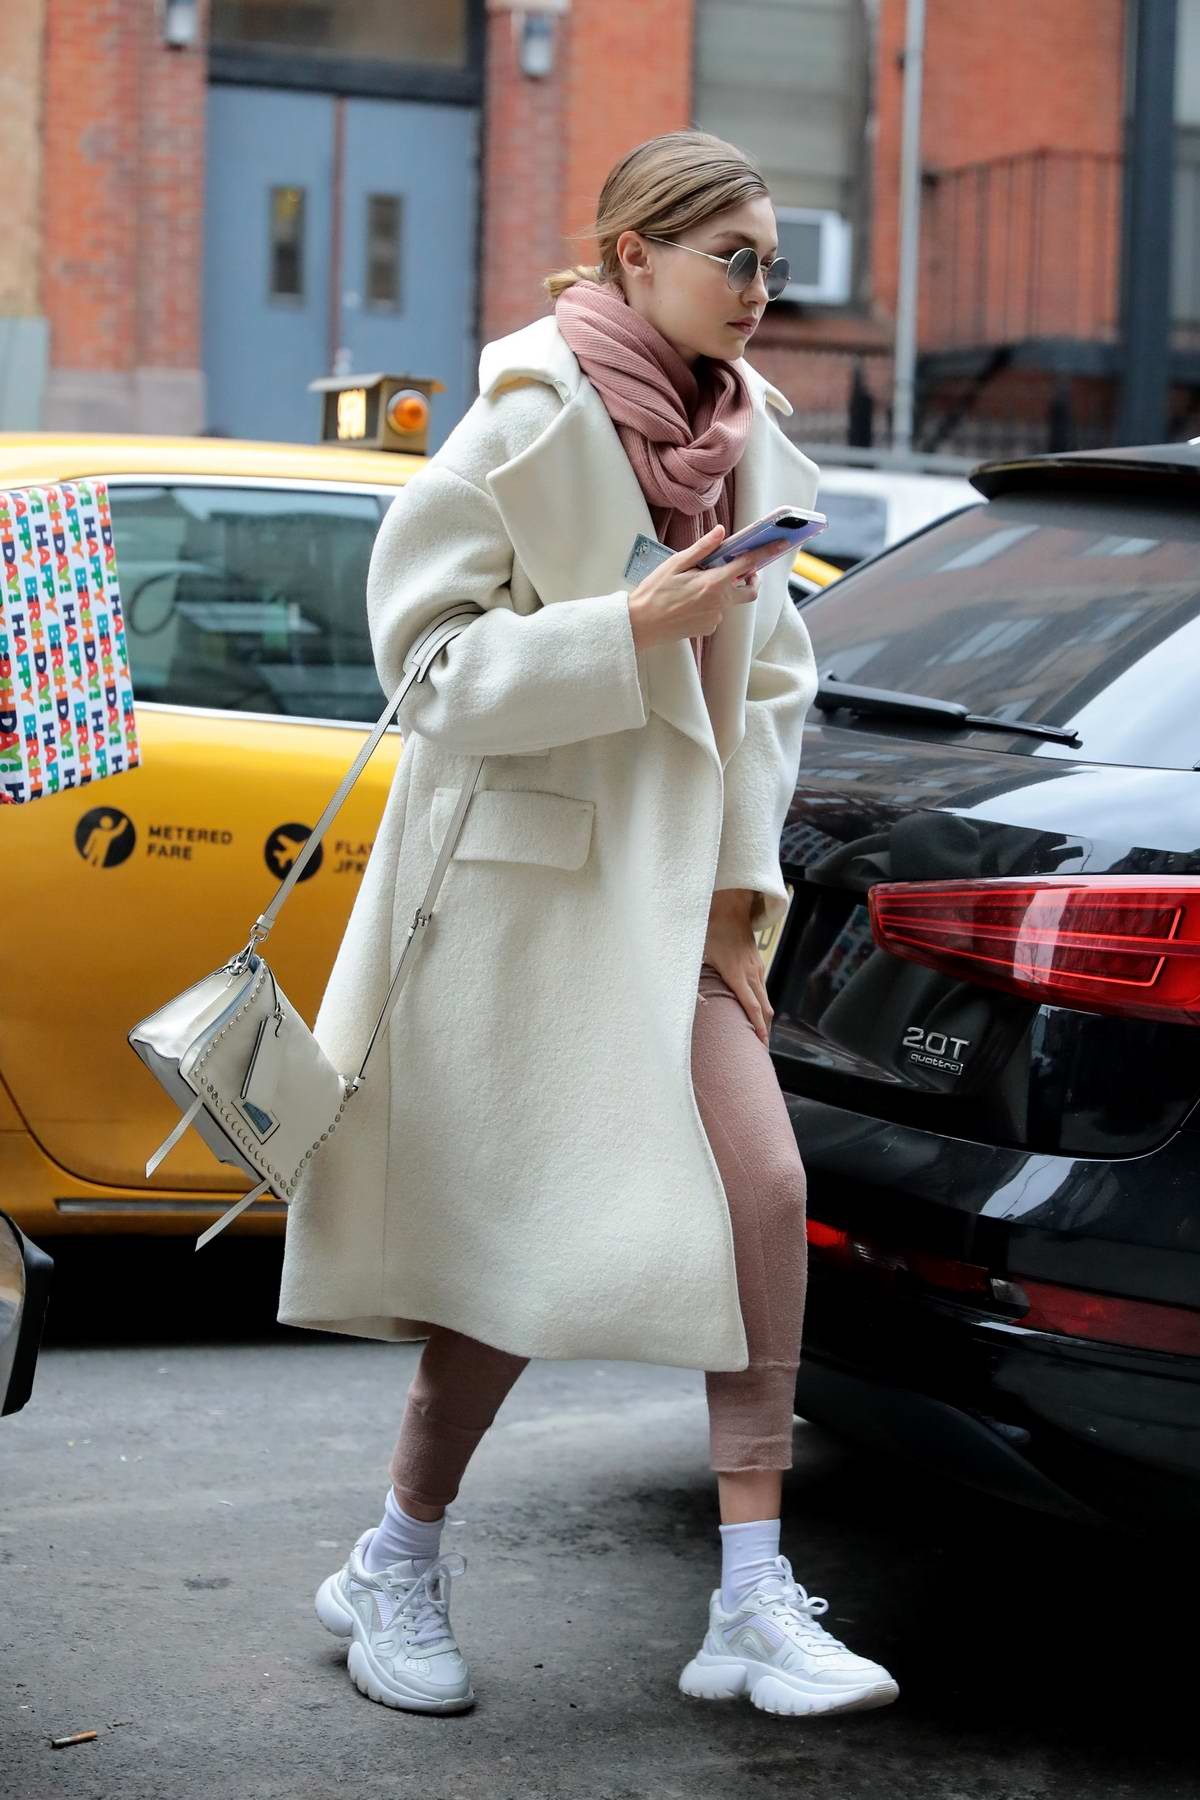 Gigi Hadid keeps warm in a stylish coat while out in New York City